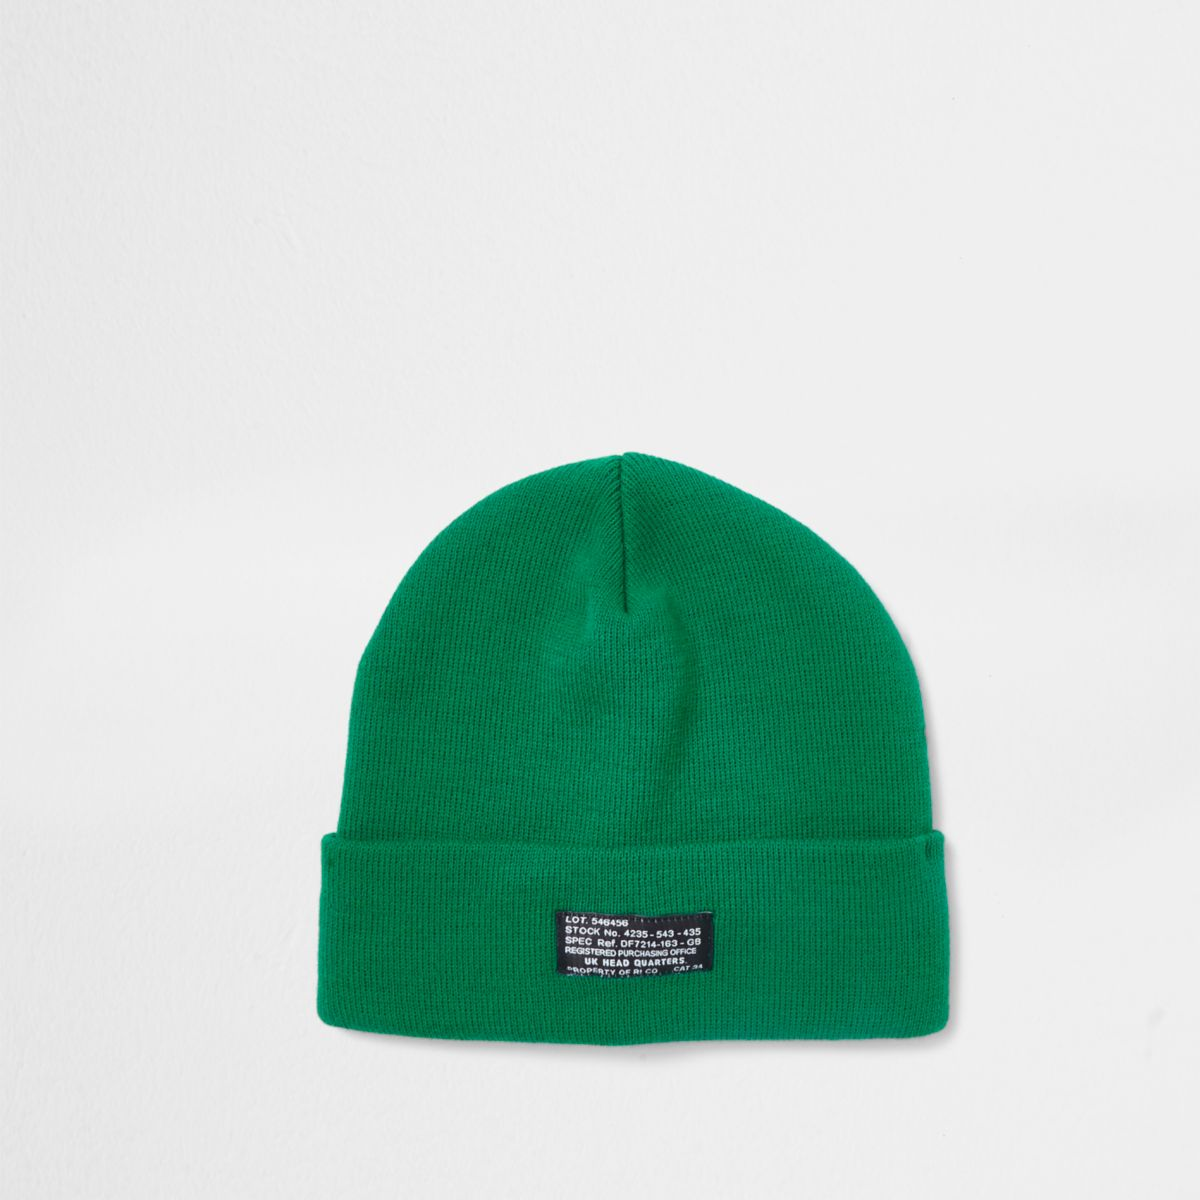 Bright green beanie hat